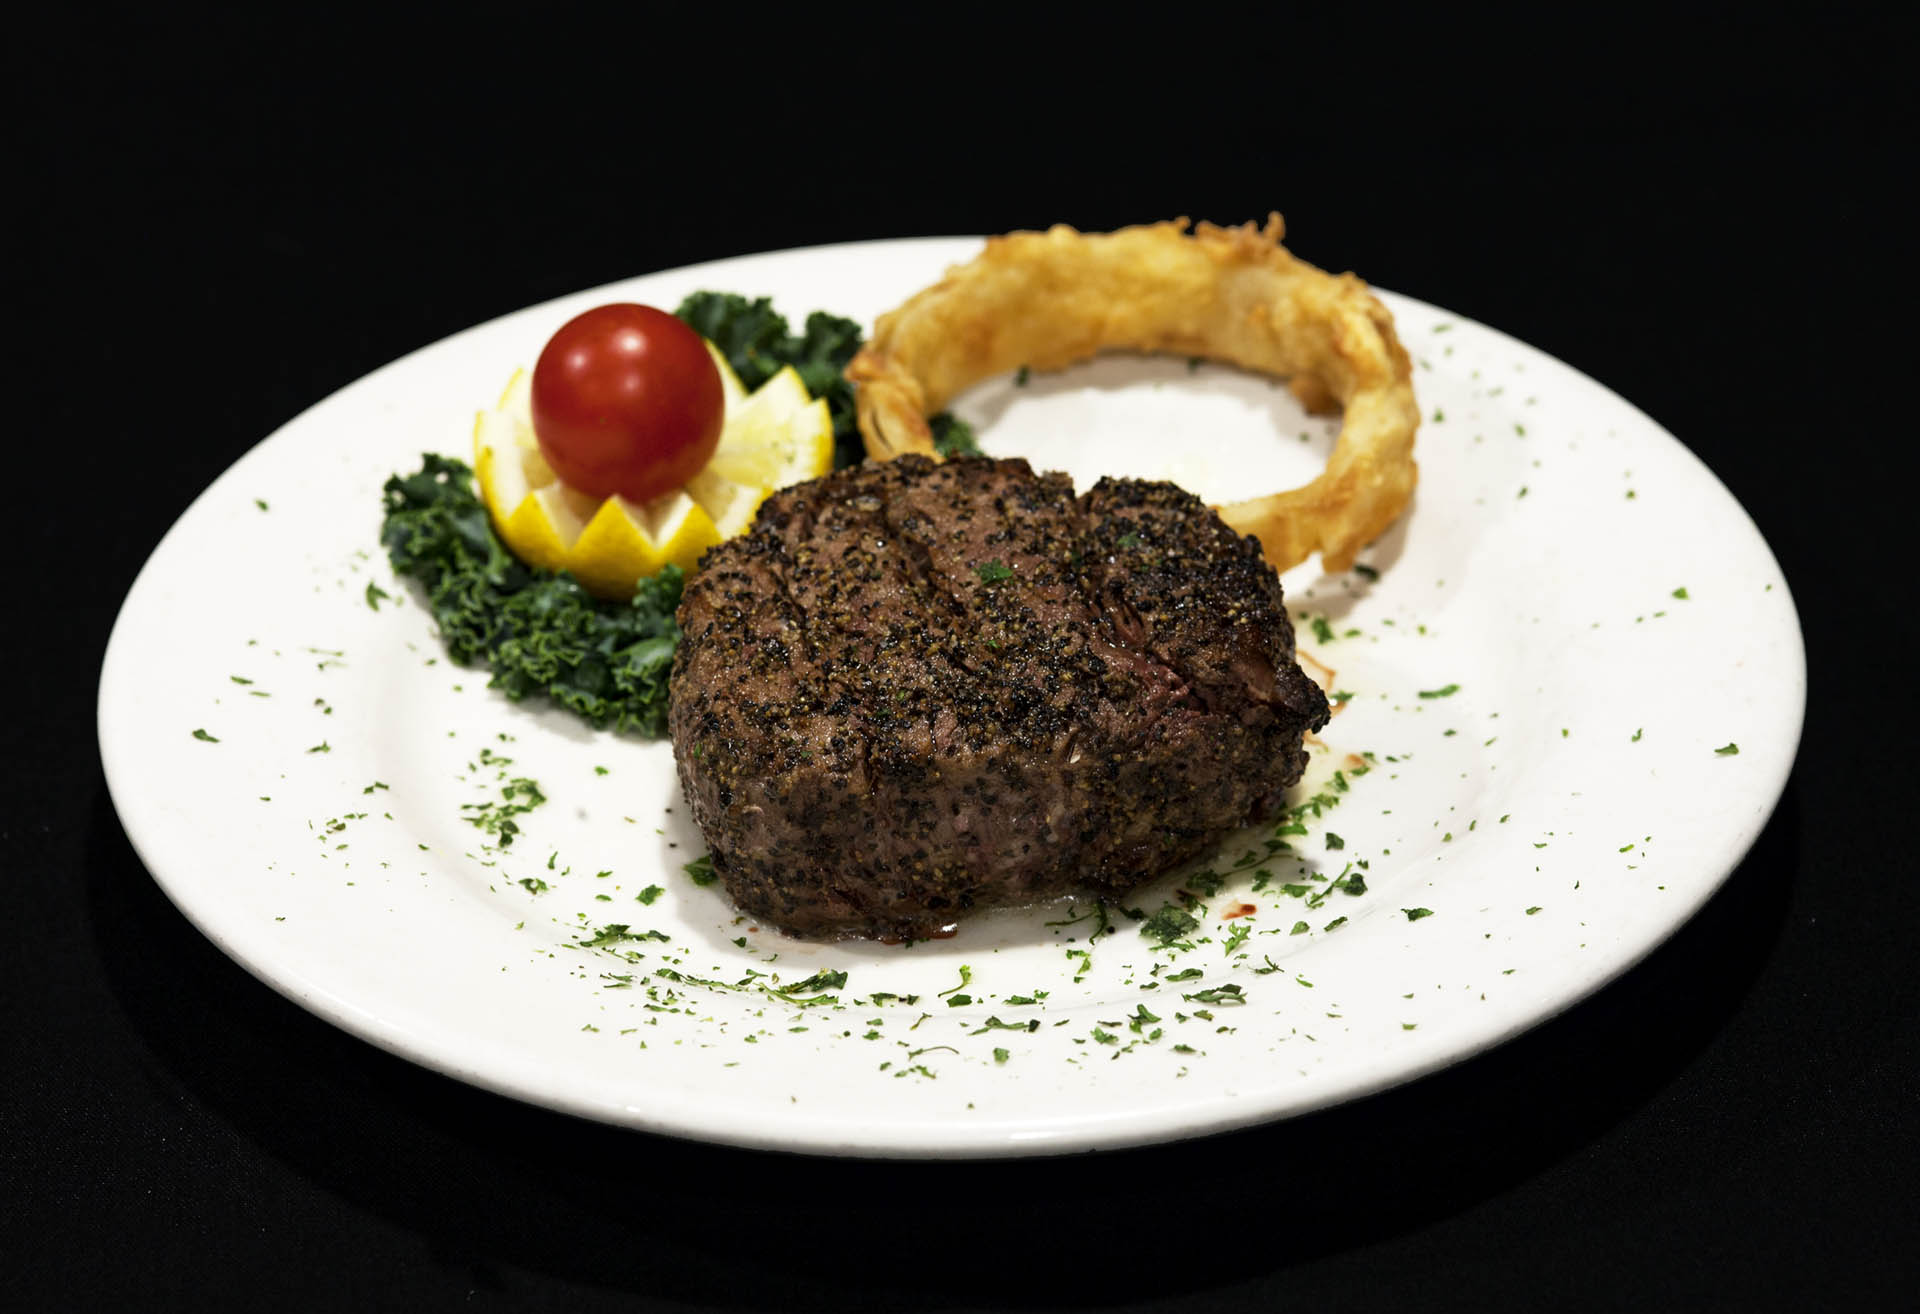 steak with onion ring, lemon, and tomato